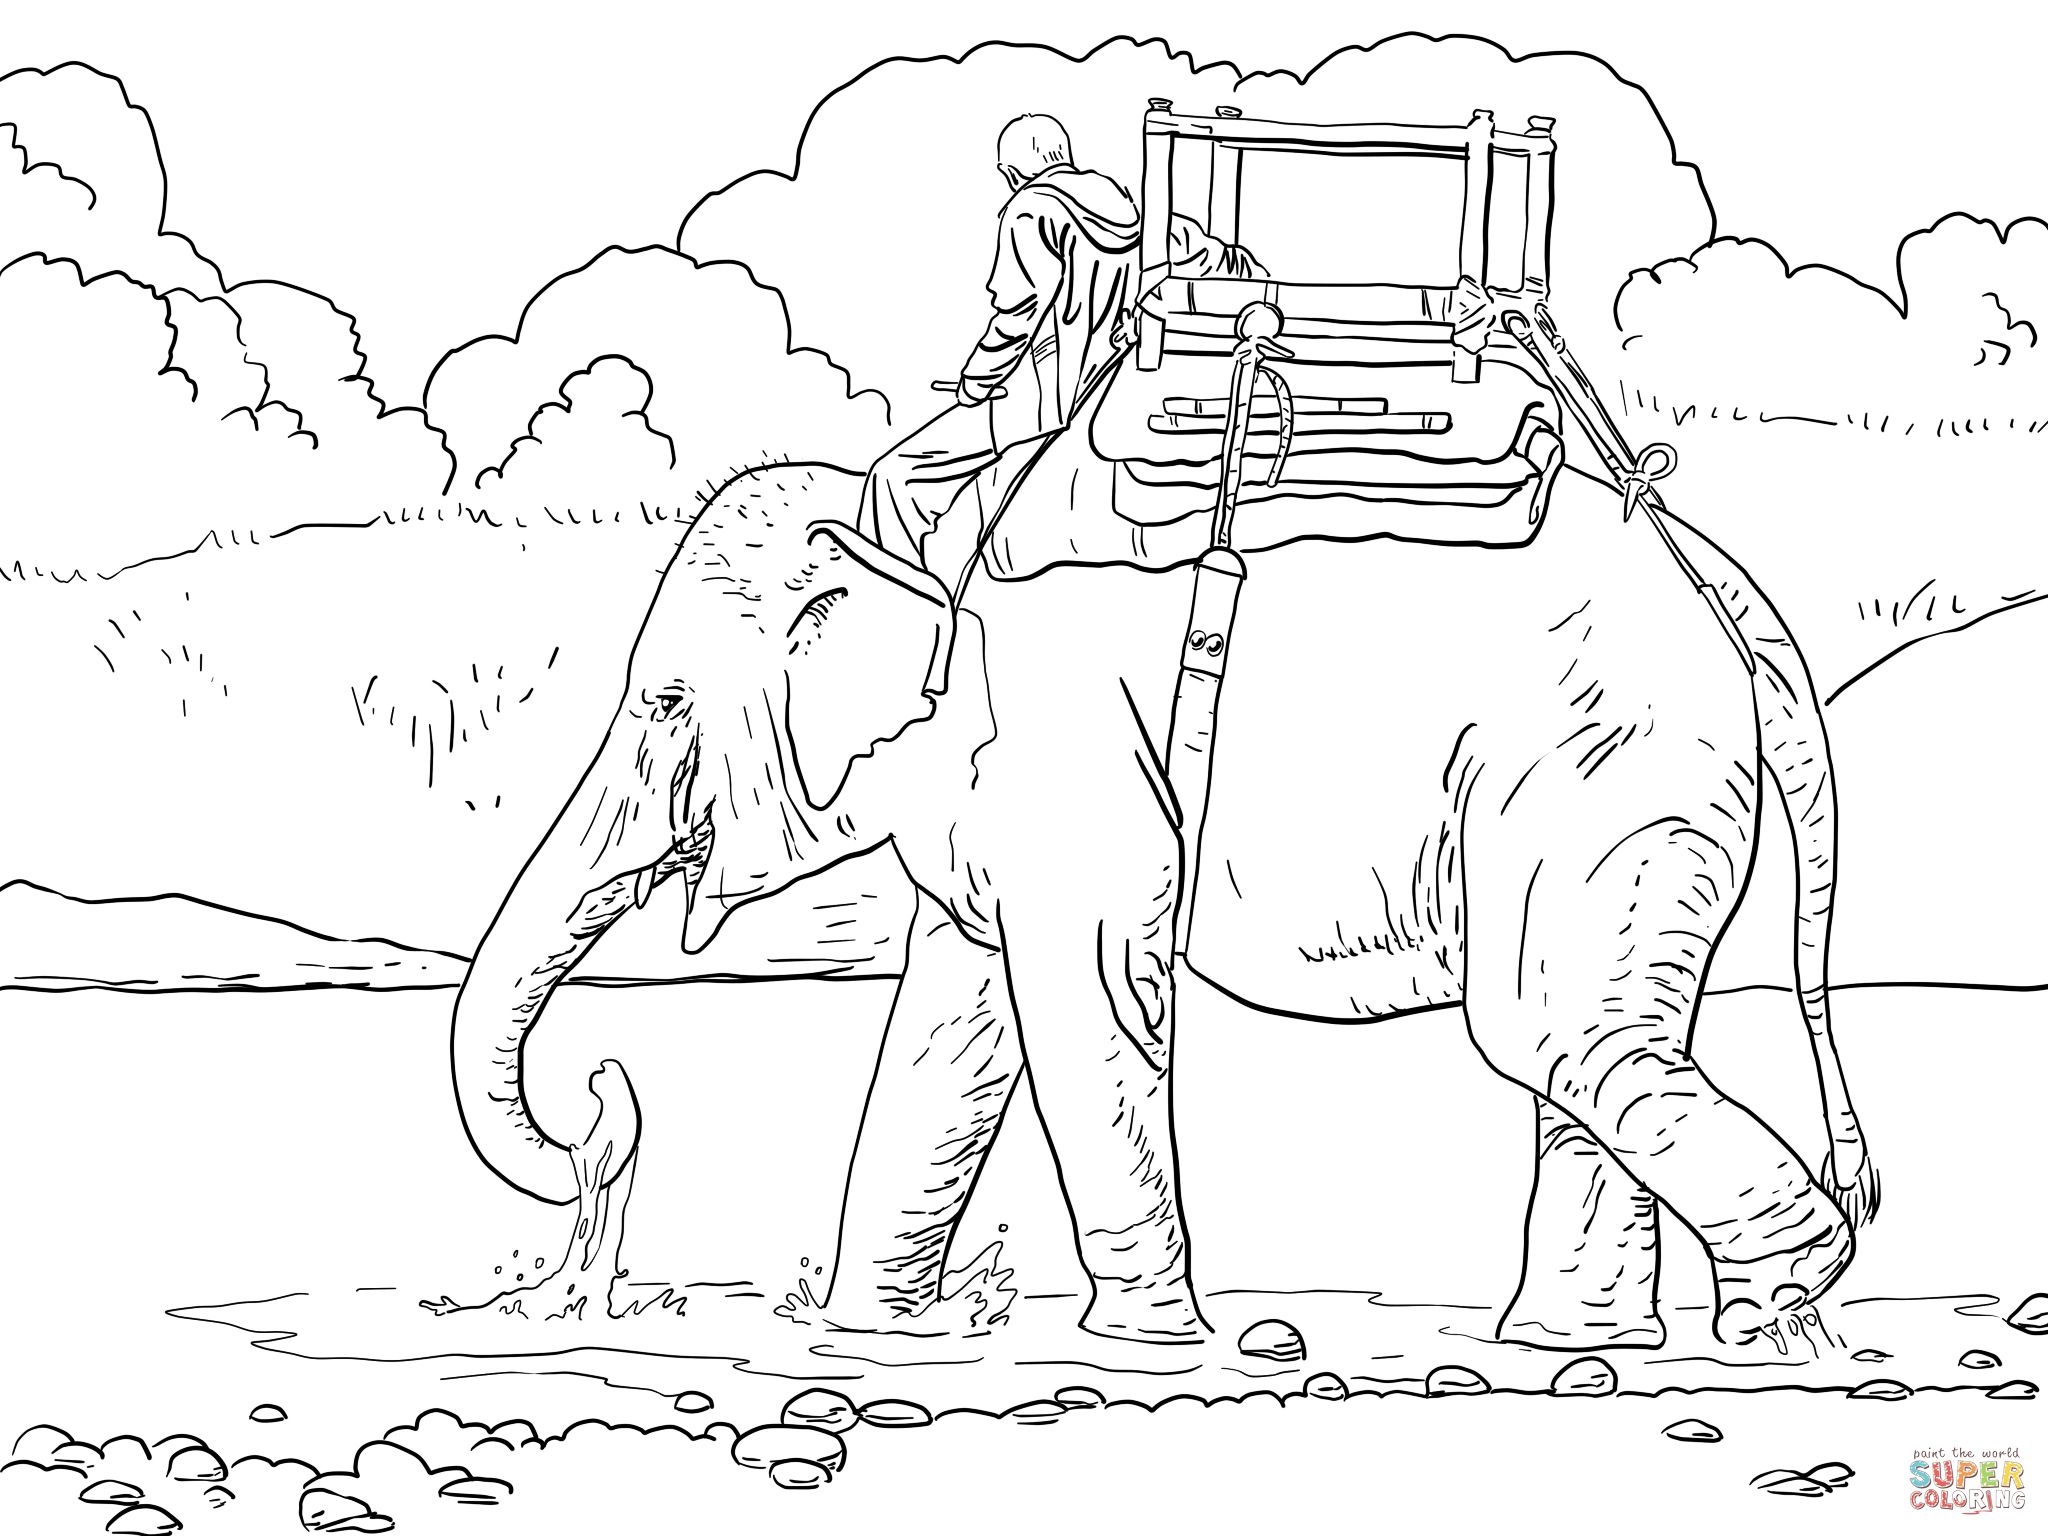 Riding Indian Elephant Super Coloring Elephant Coloring Page Farm Animal Coloring Pages Coloring Pages